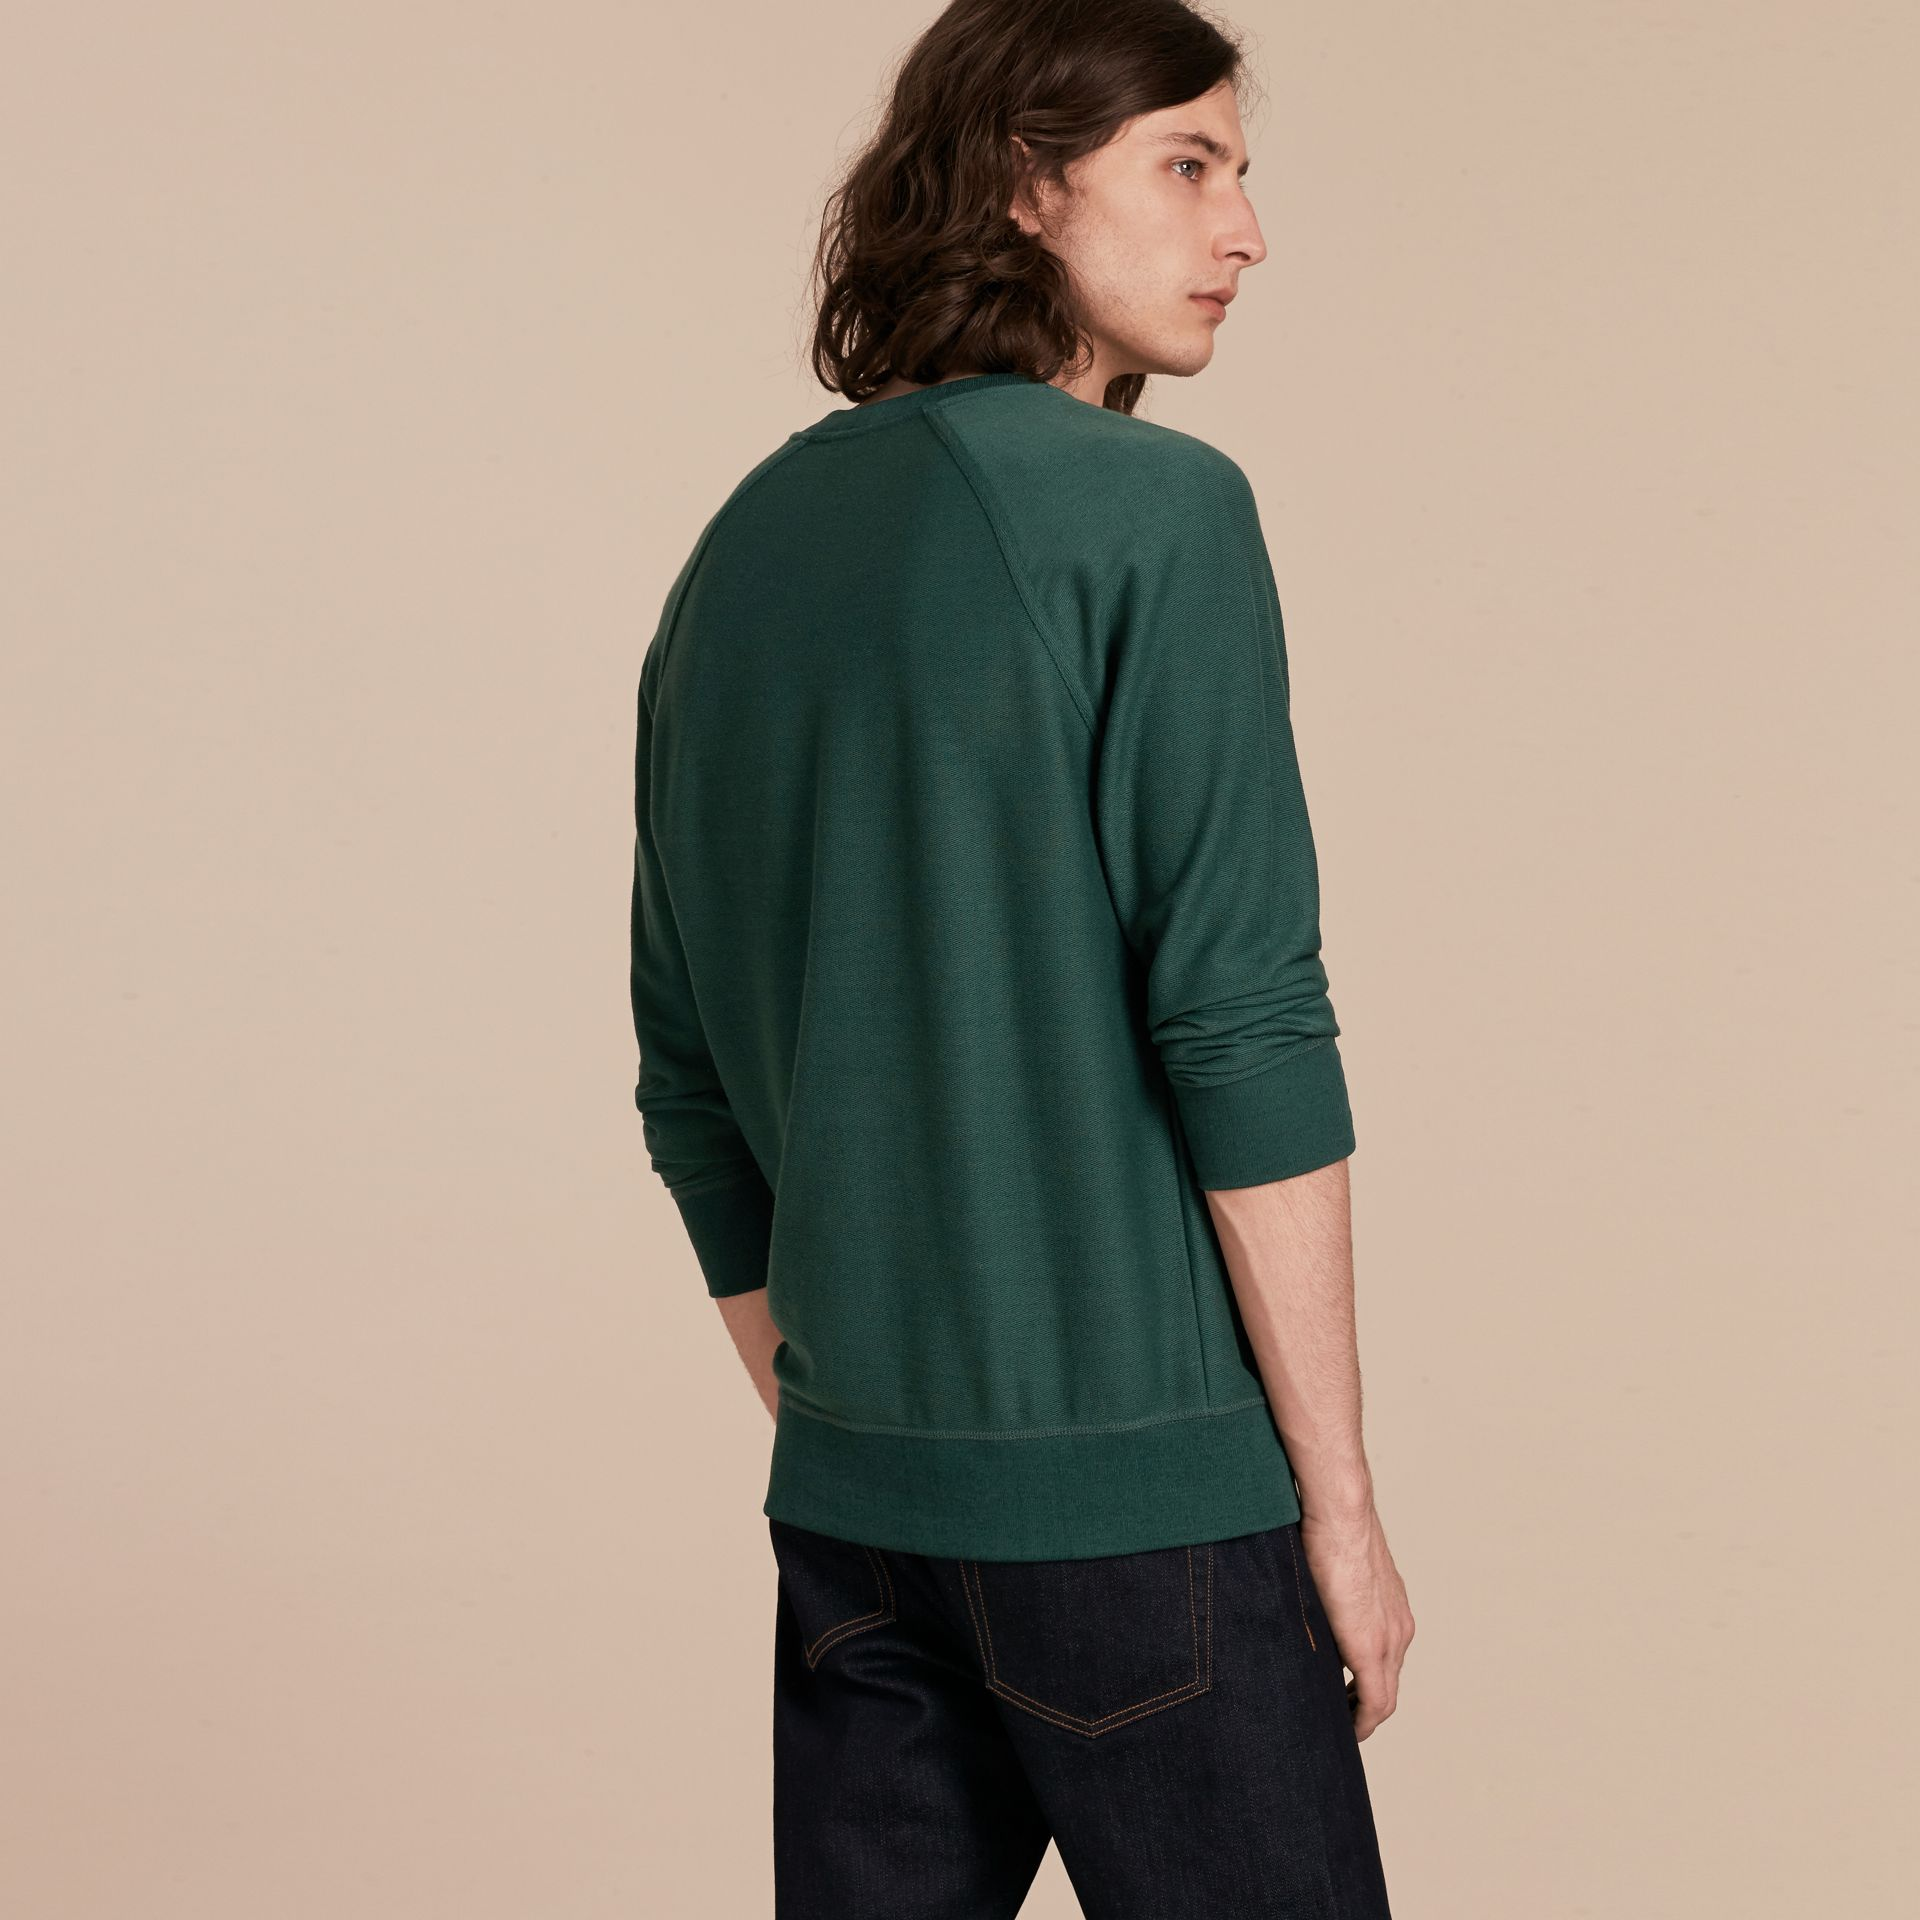 Embroidered Motif Cotton-blend Jersey Sweatshirt in Deep Teal - Men | Burberry - gallery image 3